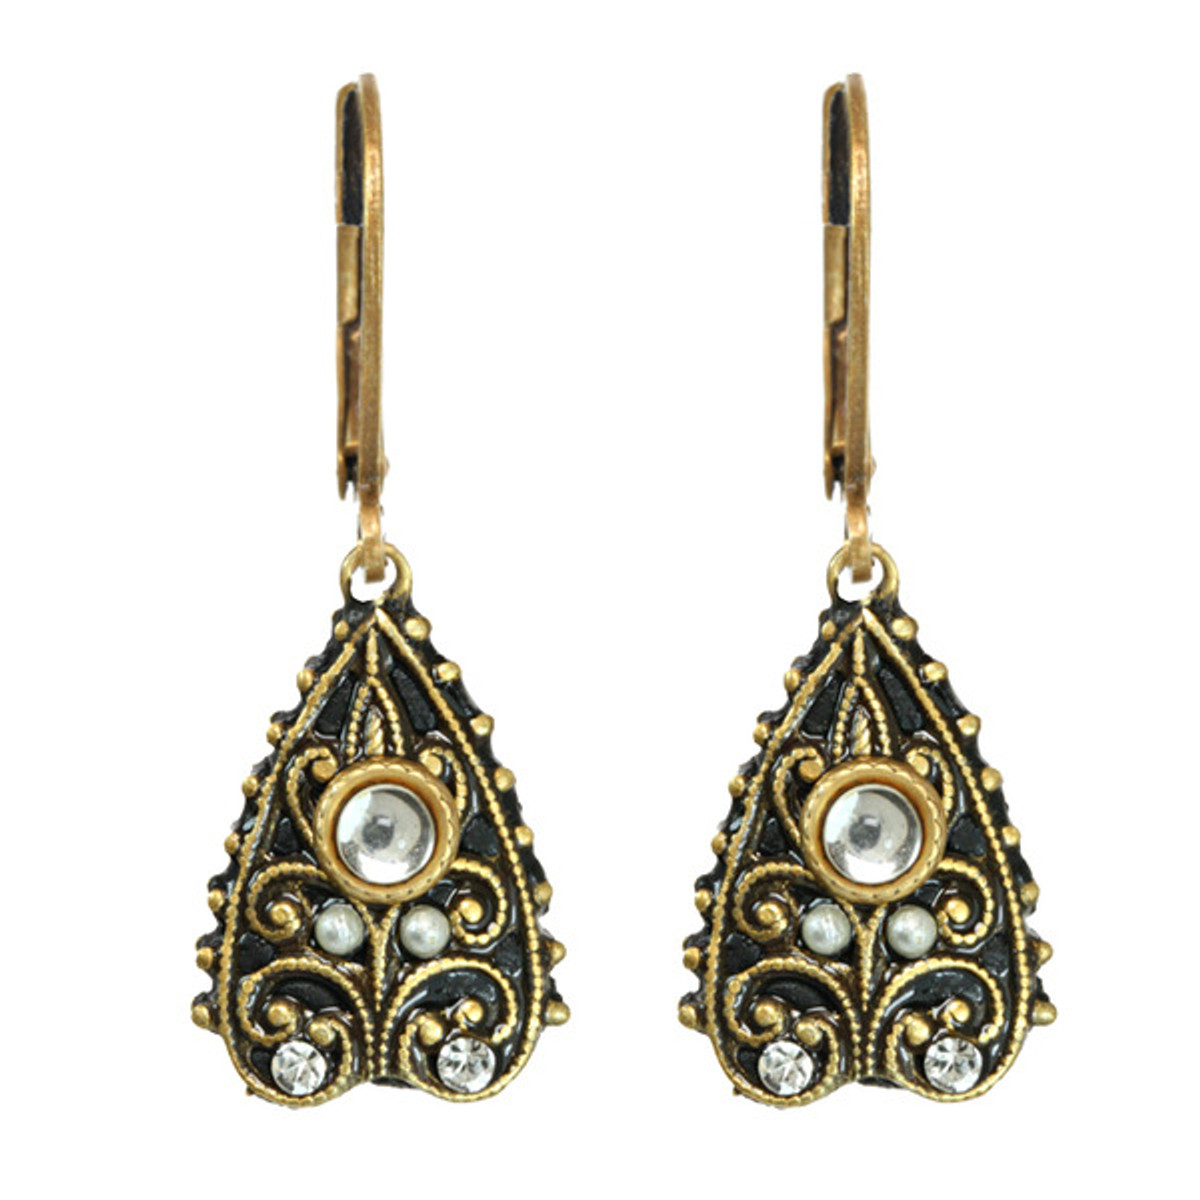 Michal Golan Jewelry Earrings Deco